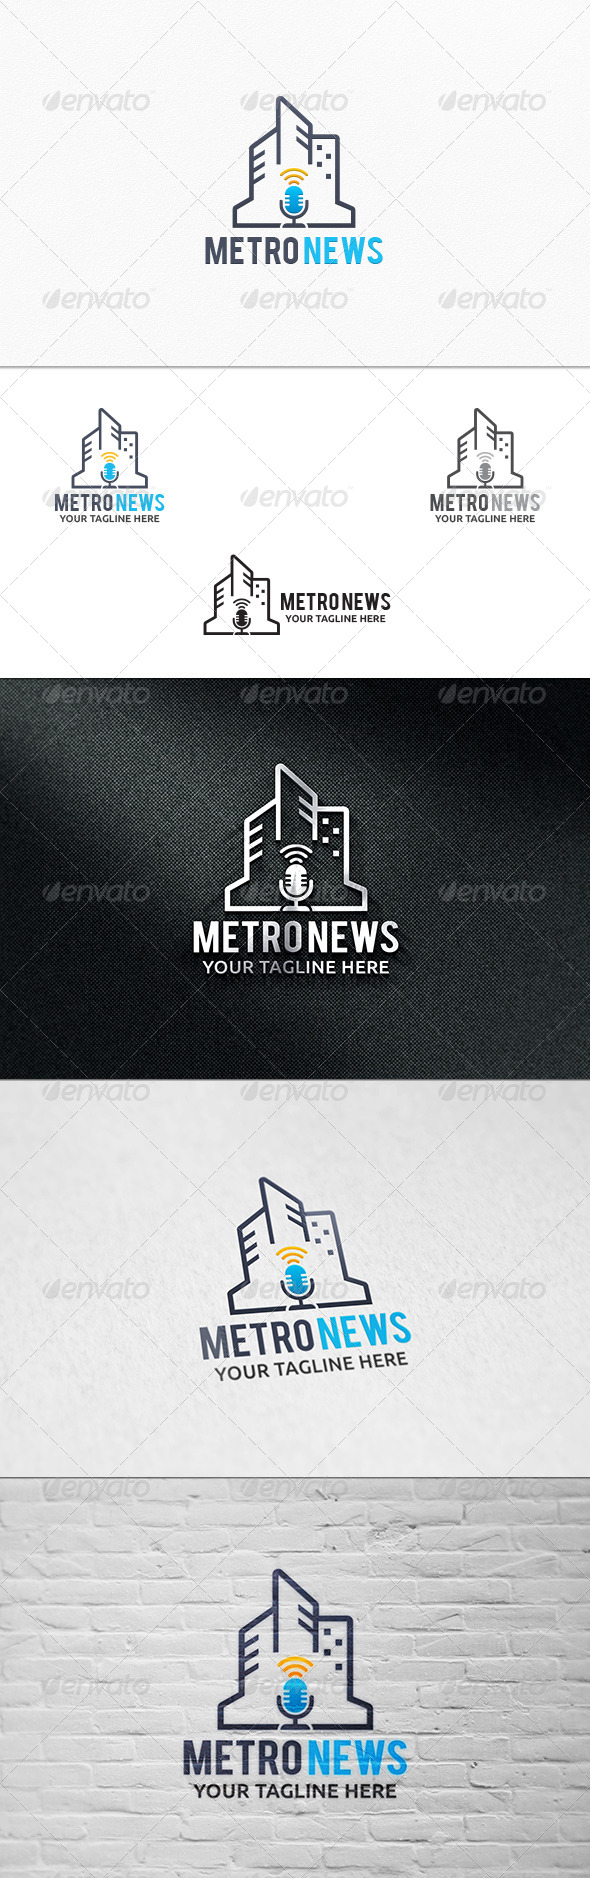 GraphicRiver Metro News Logo Template 7329110